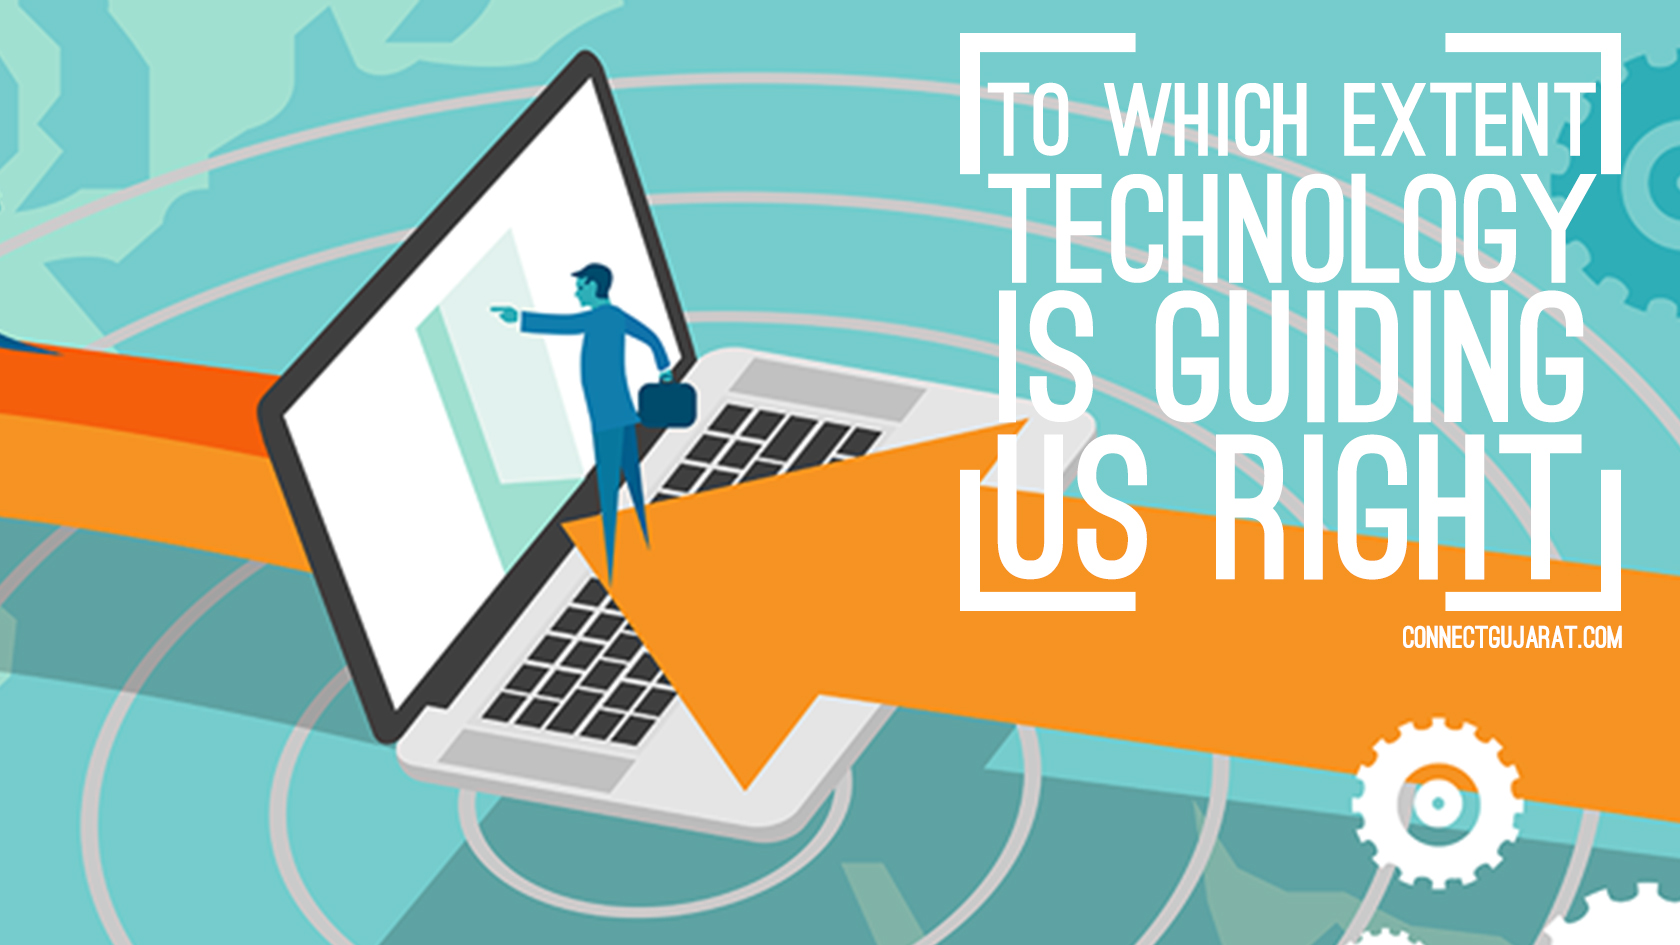 To Which Extent Technology Is Guiding Us Right